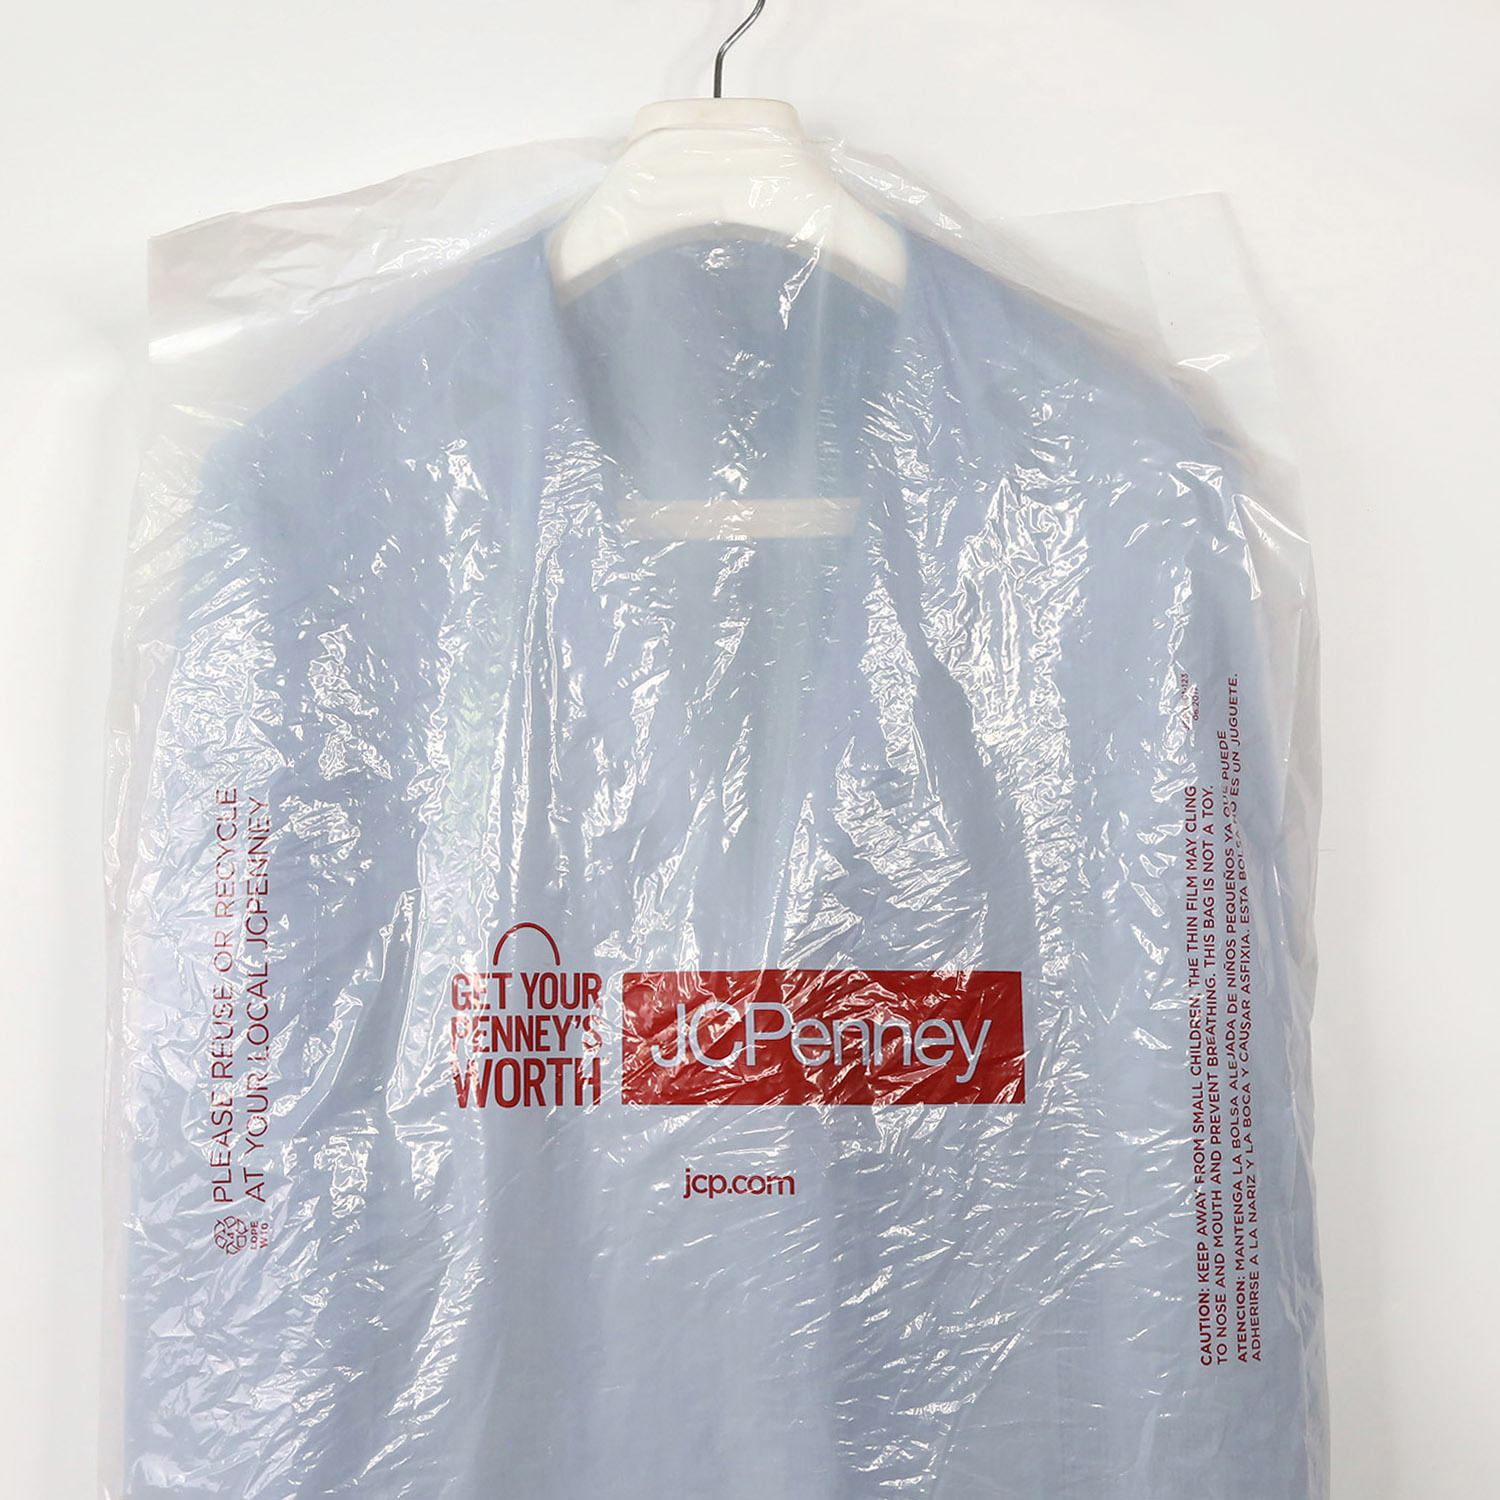 83d71168de5c China Factory Dry Cleaning Poly Garment Laundry Plastic Roll Clear Bag -  China Garment Cover, Garment Bag